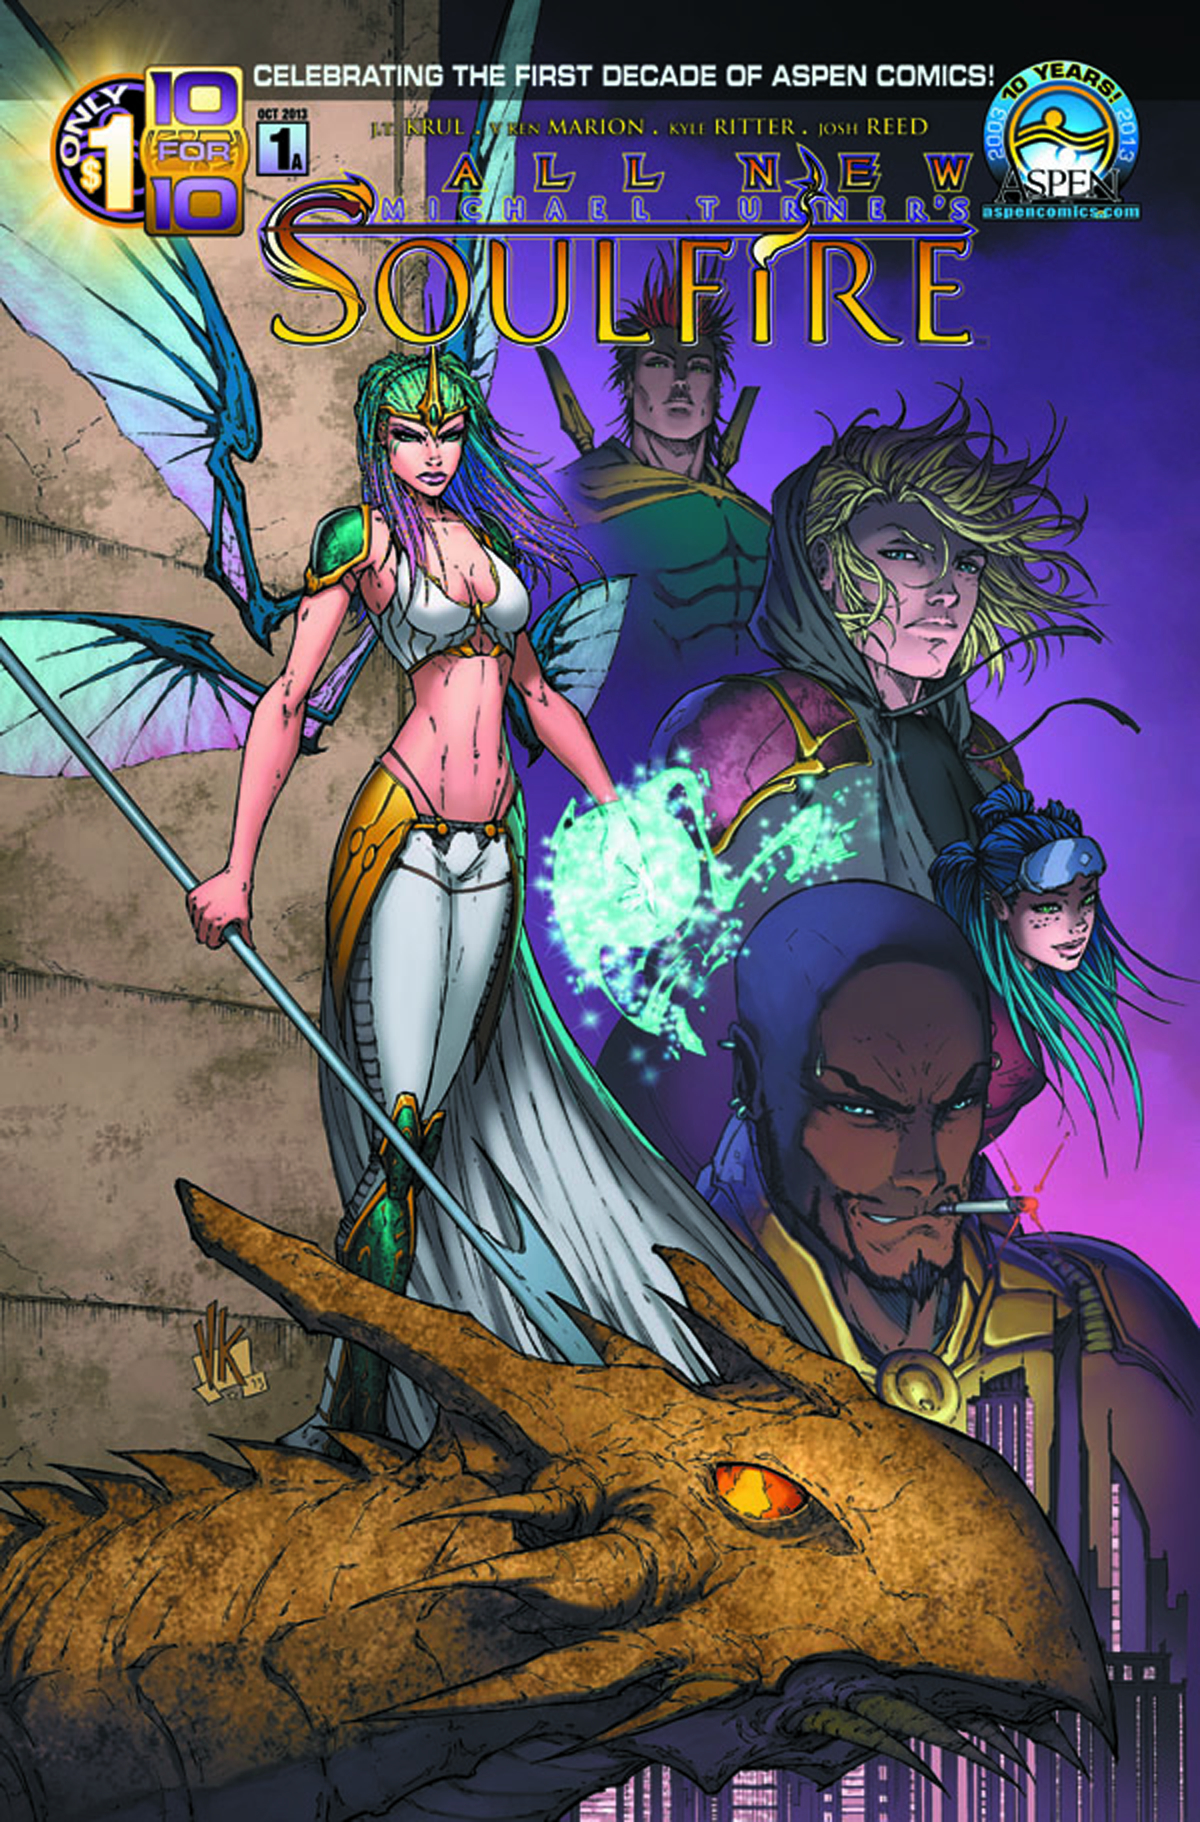 ALL NEW SOULFIRE #1 INCV STORE SIGNING